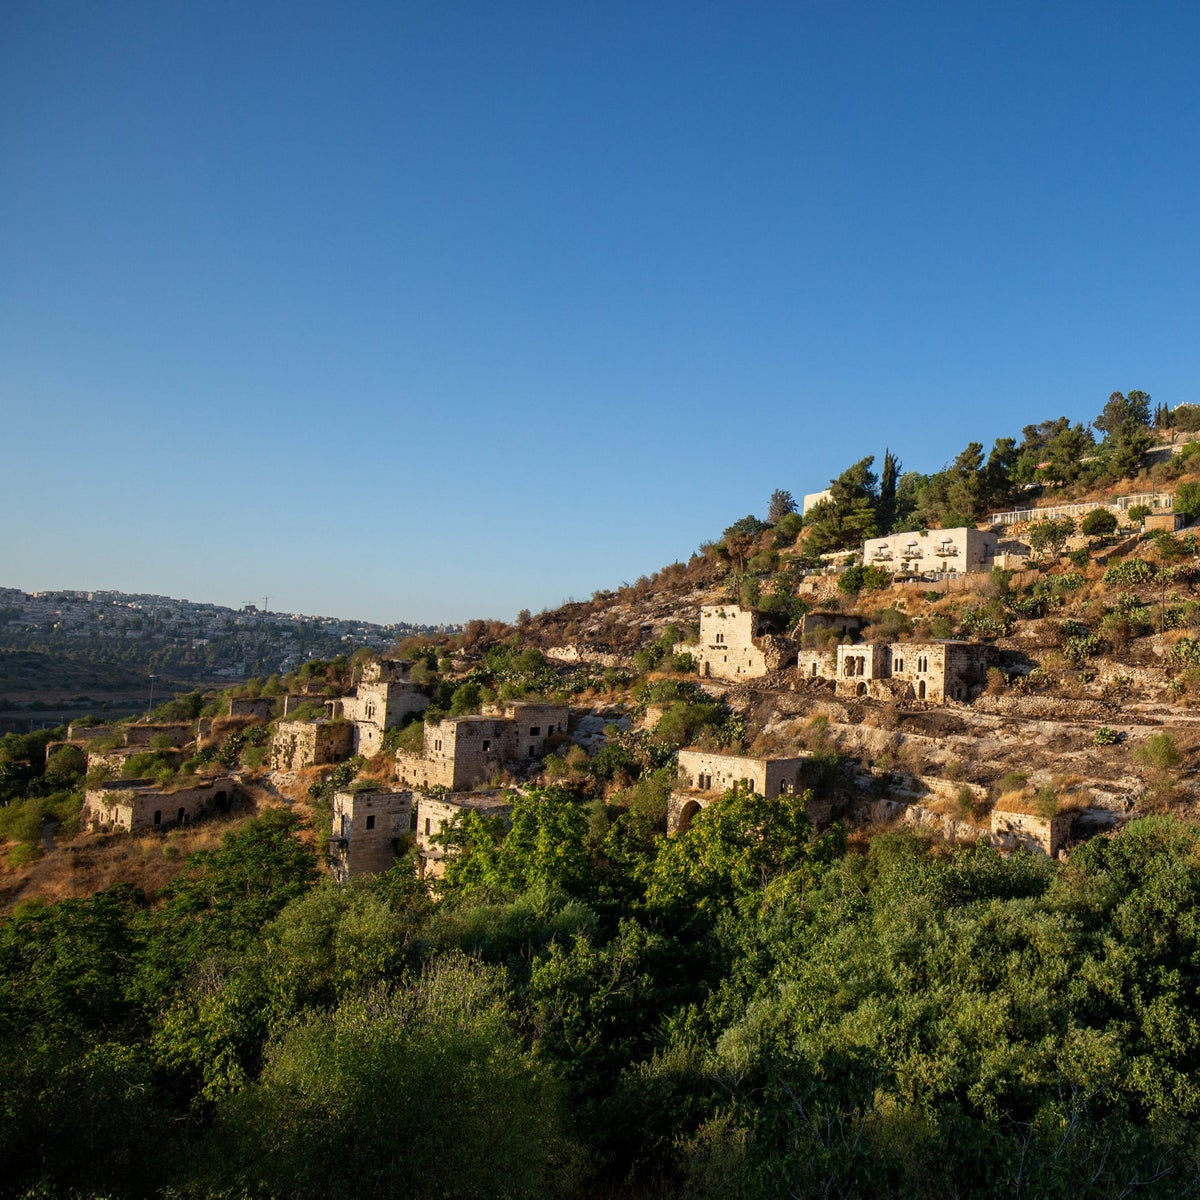 Lifta, last month. Was one of hundreds of villages left abandoned after the Israel's War of Independence in 1948.